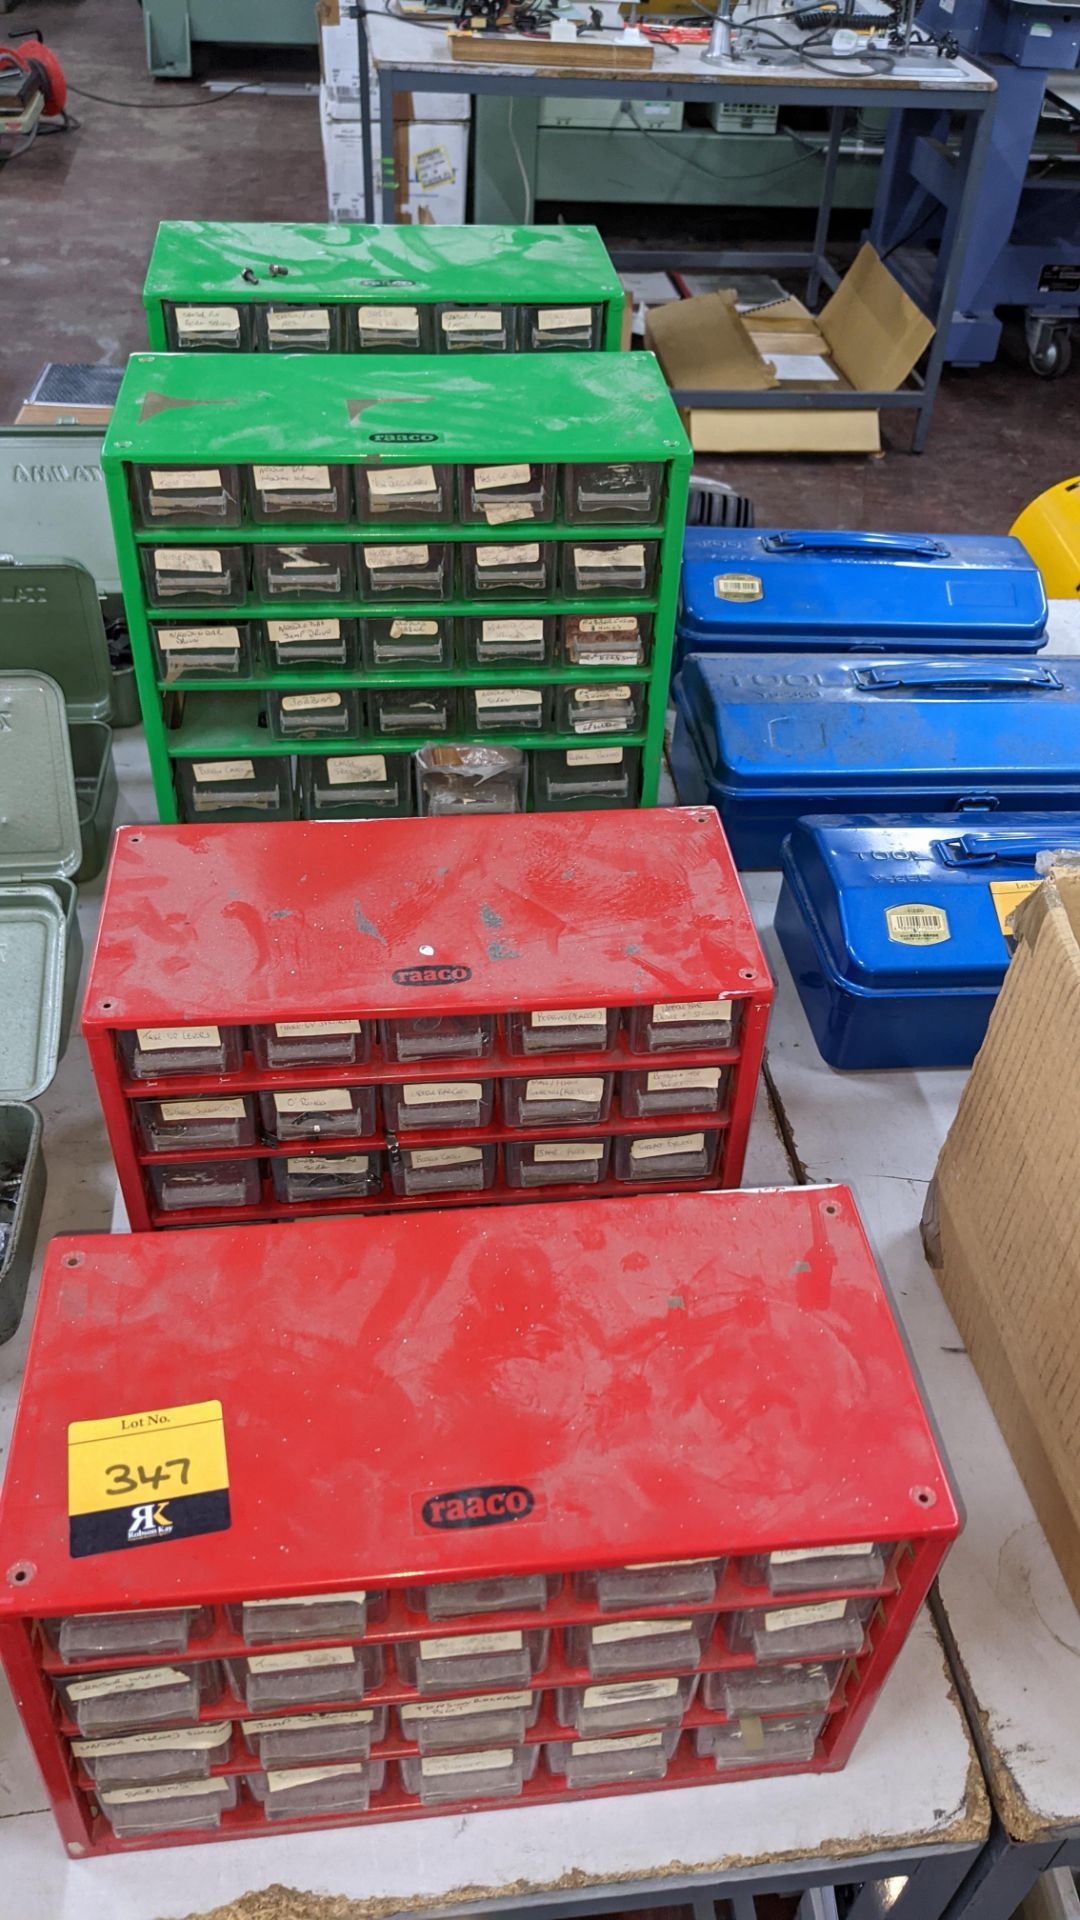 4 off mini cabinets & their contents of machinery parts & spares